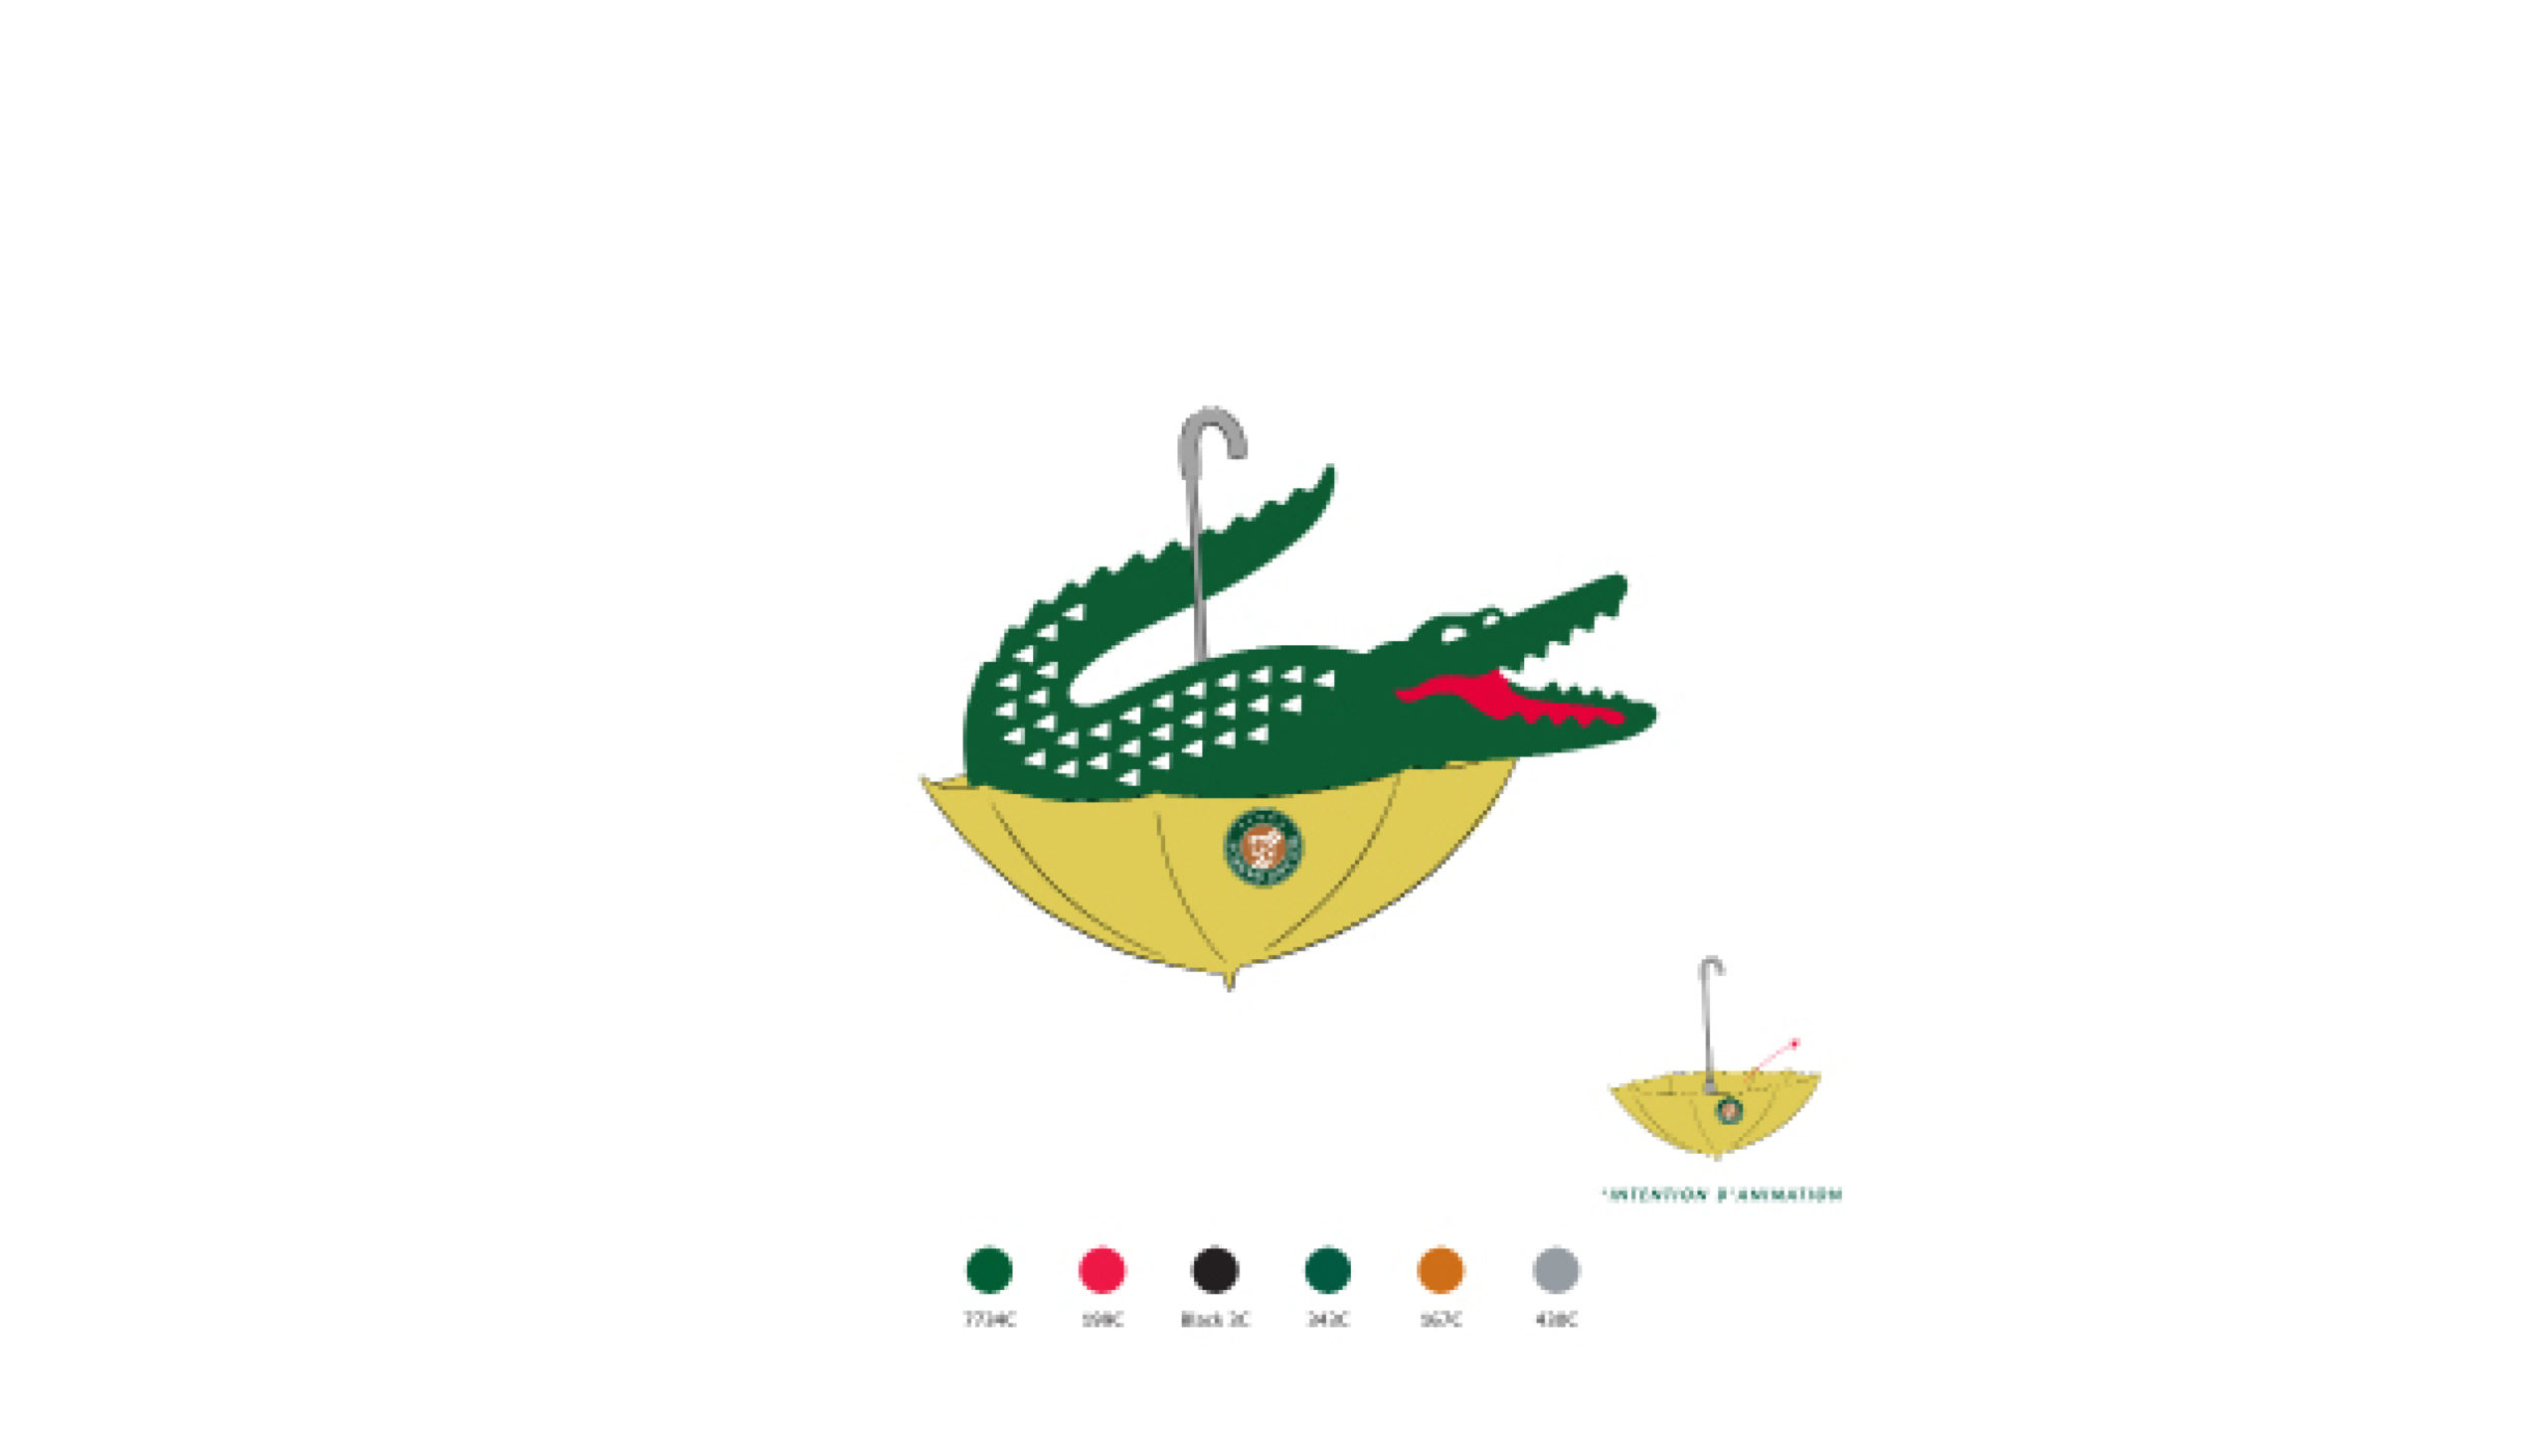 LACOSTE_STICKERS_HOBBYNOTE_R_0416